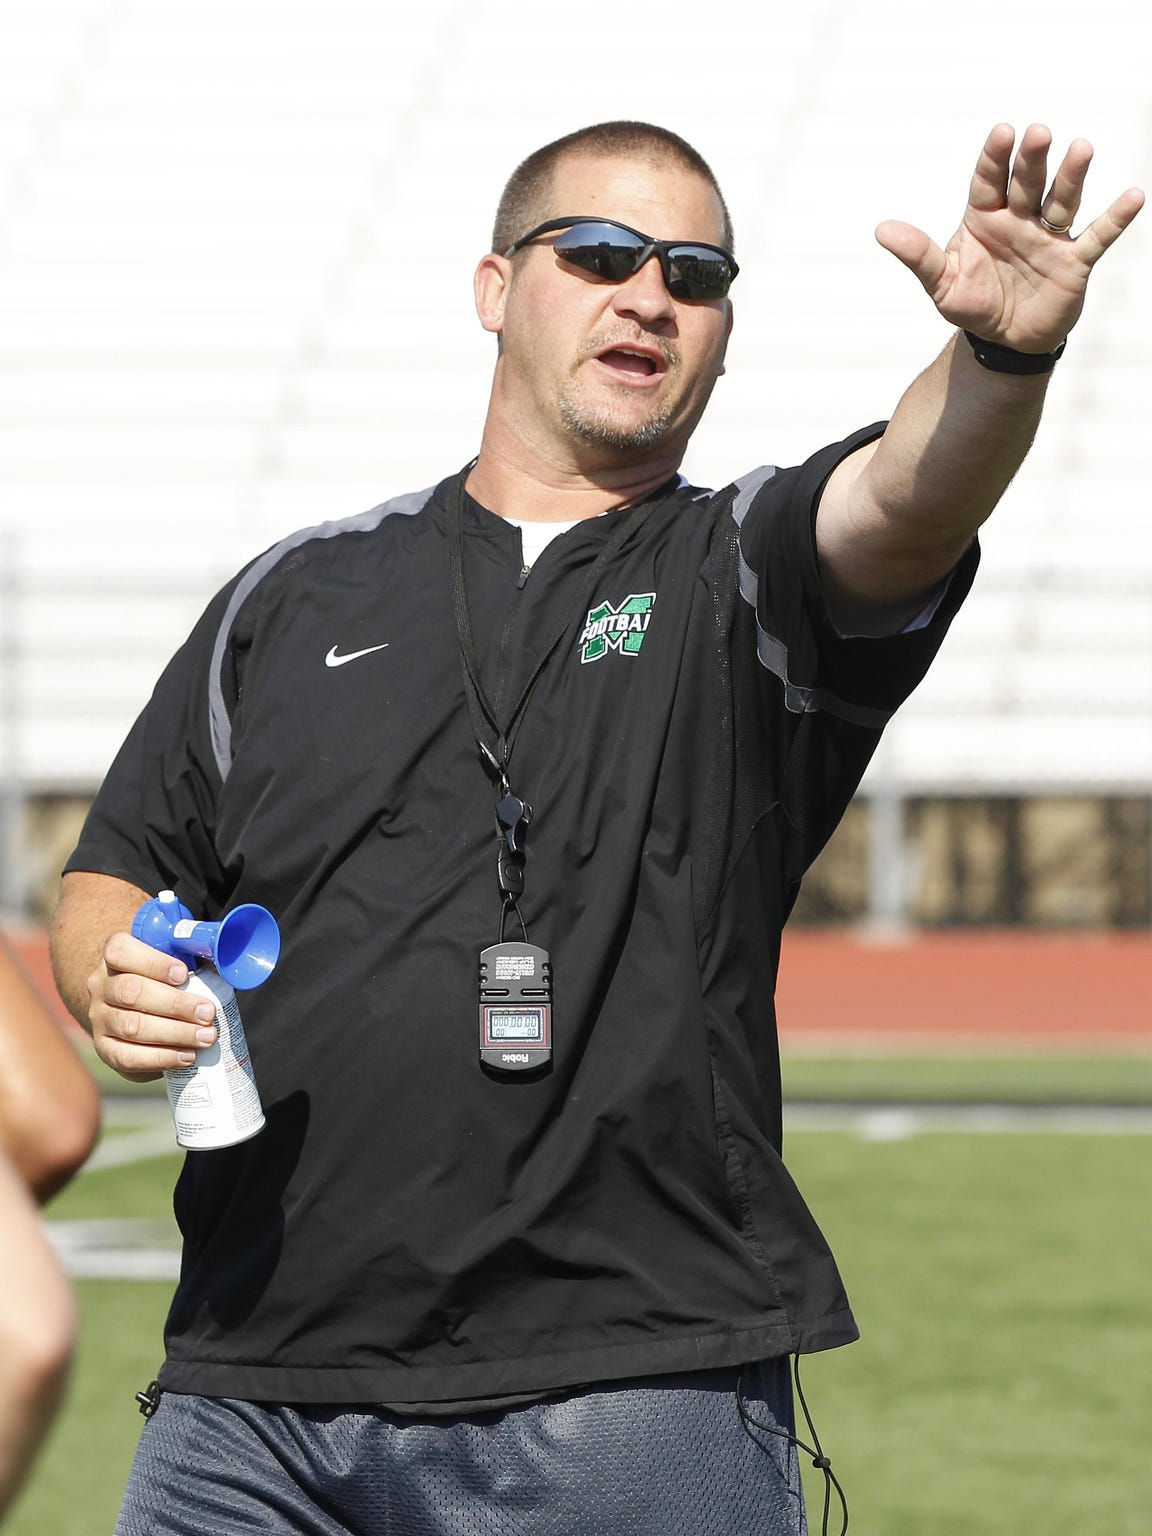 Mason Football Coach Brian Castner has denied allegations